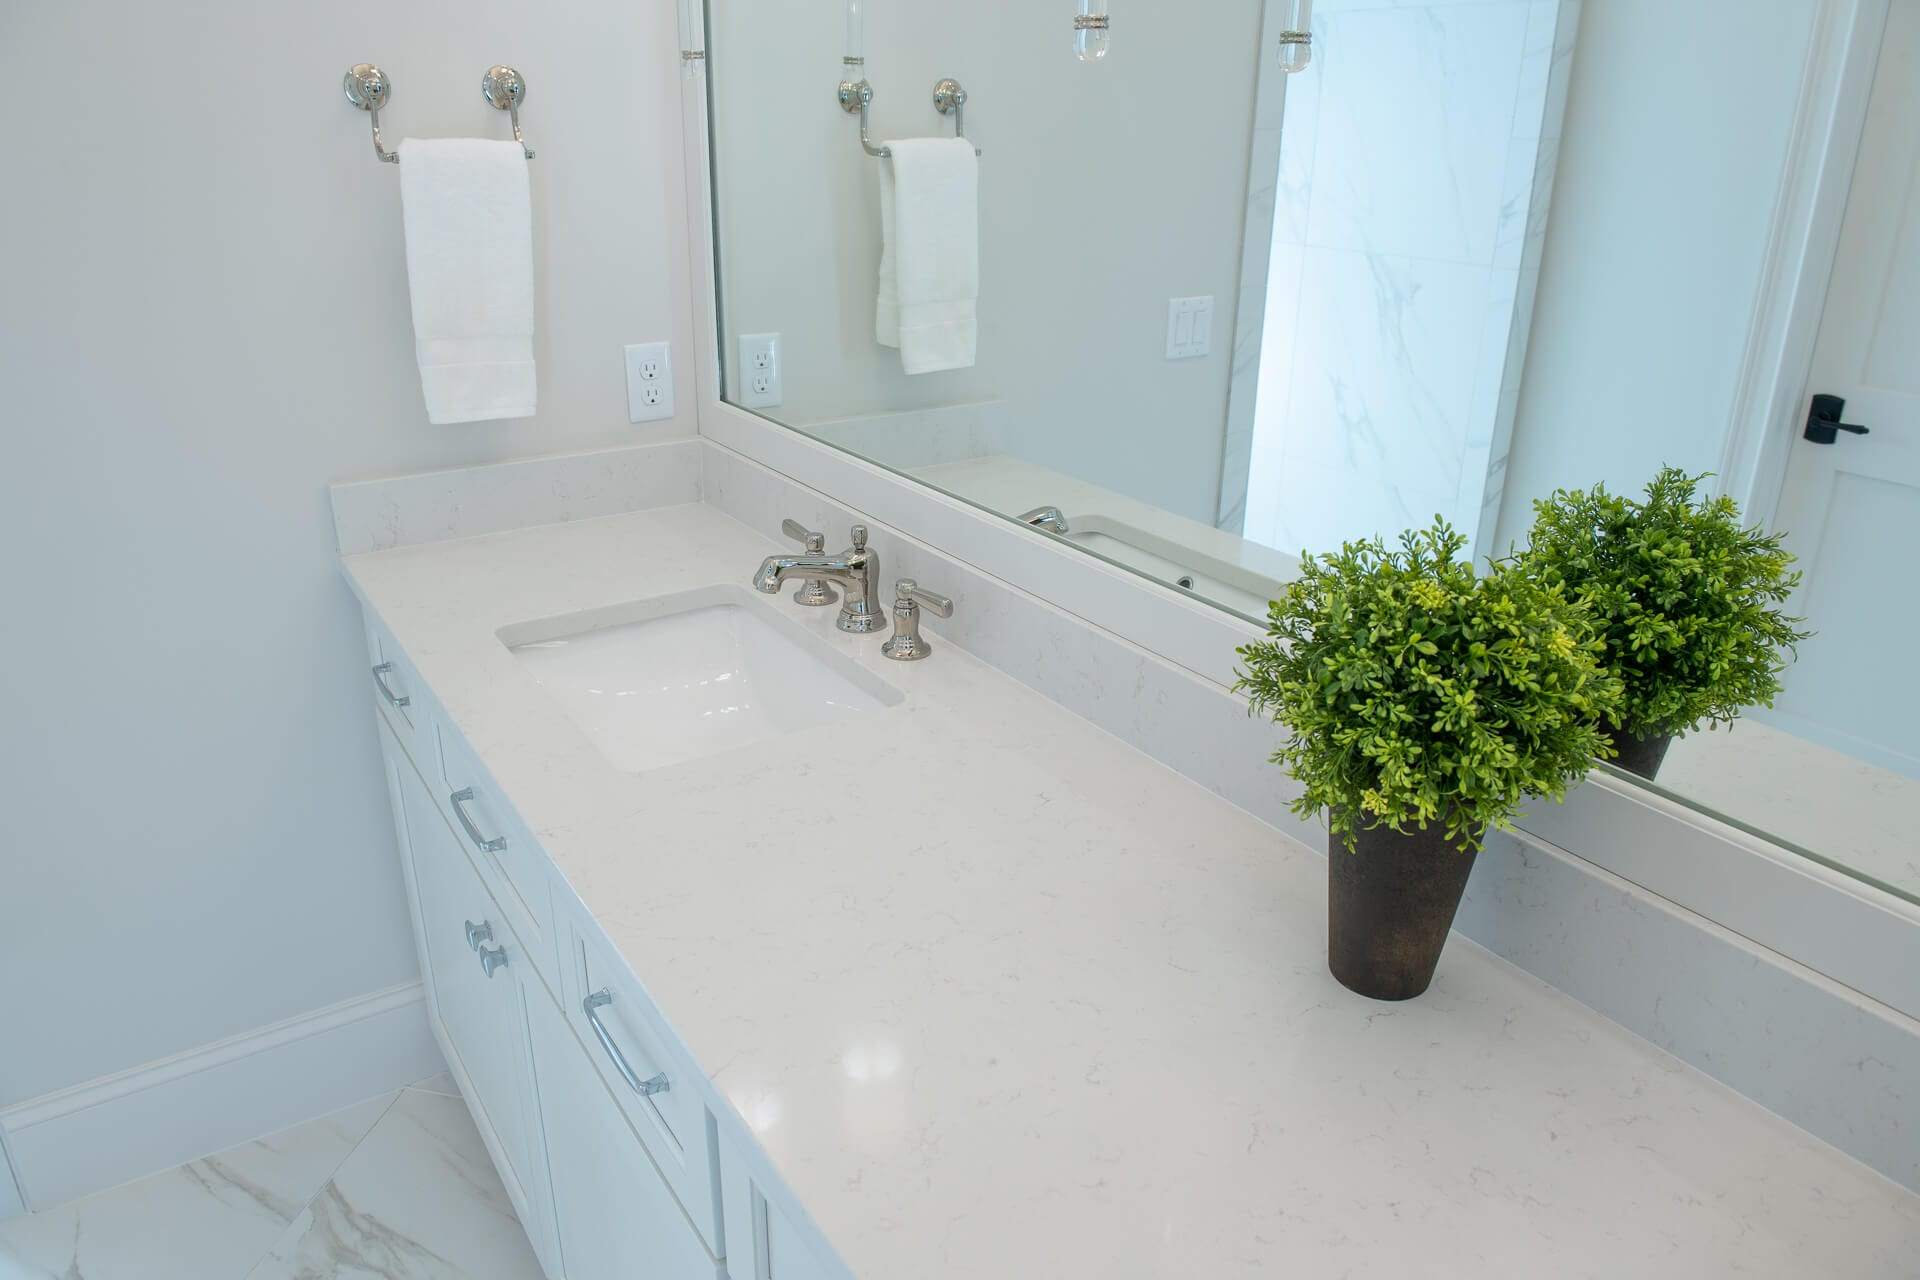 nd5 1123 Bathroom Vanity Remodeled by Magnolia Countertops. A Countertop fabricator of Granite Countertops, Marble Countertops, and Quartz Countertops in Cookeville and Crossville TN.